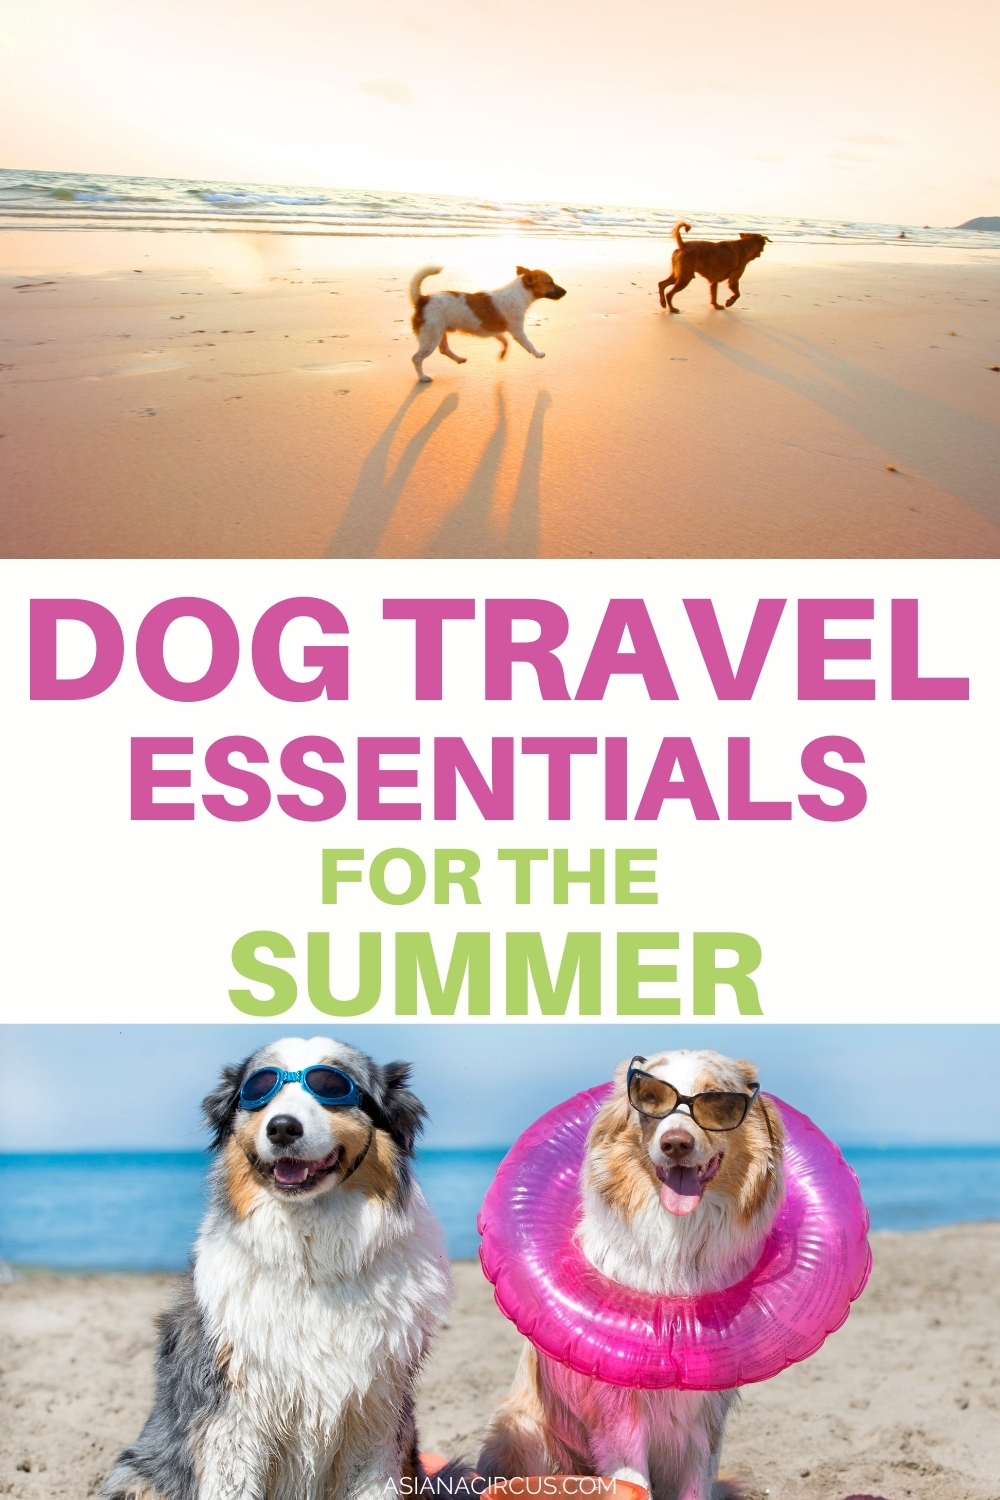 Dog Travel essentials for the summer (1)